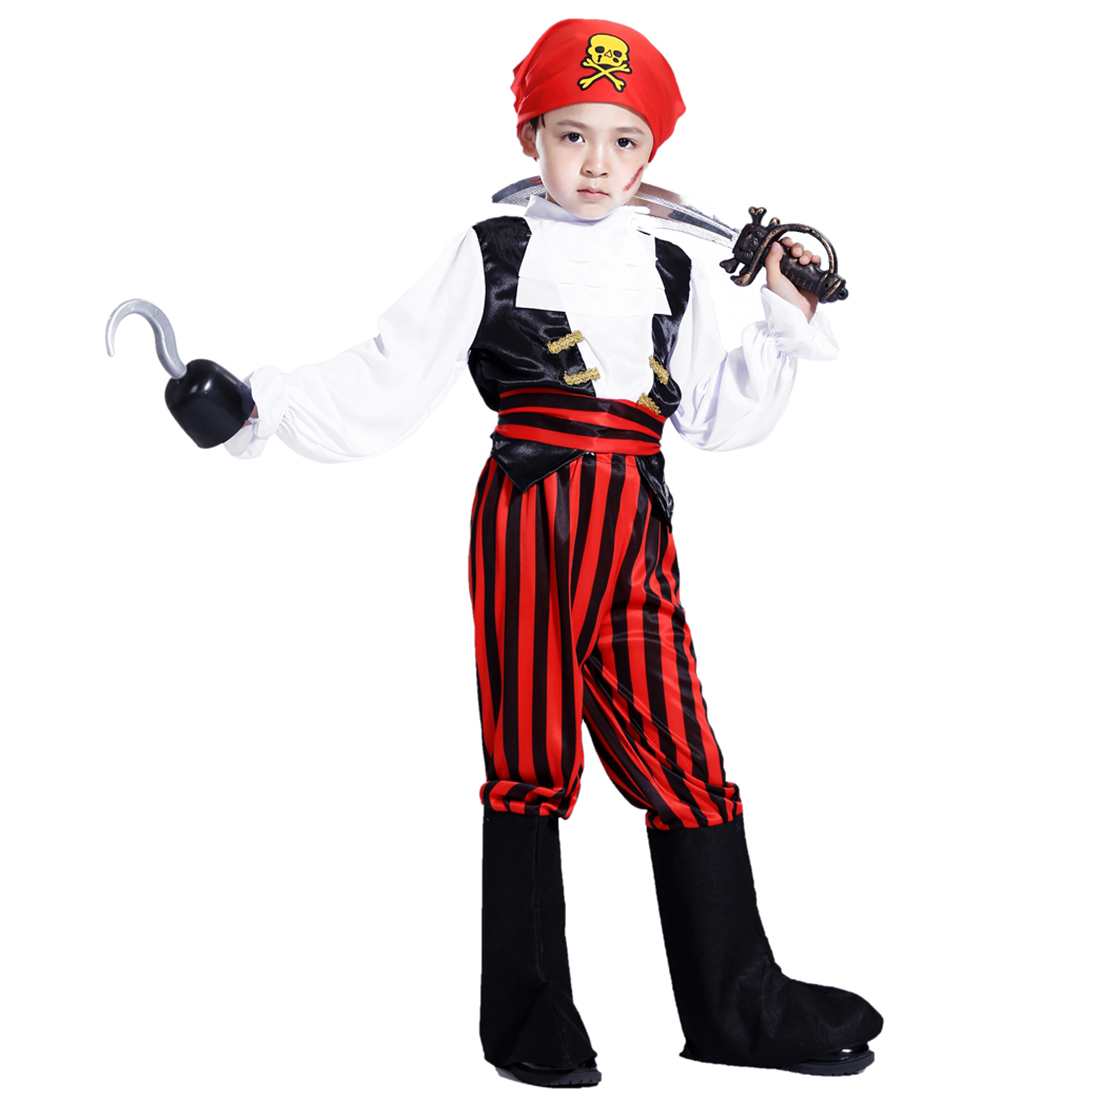 Halloween Pirate Cosplay Suit South African Pirate Costume Set With Pirate Knife And Pirate Hook For 4-6 Years Old - M Size